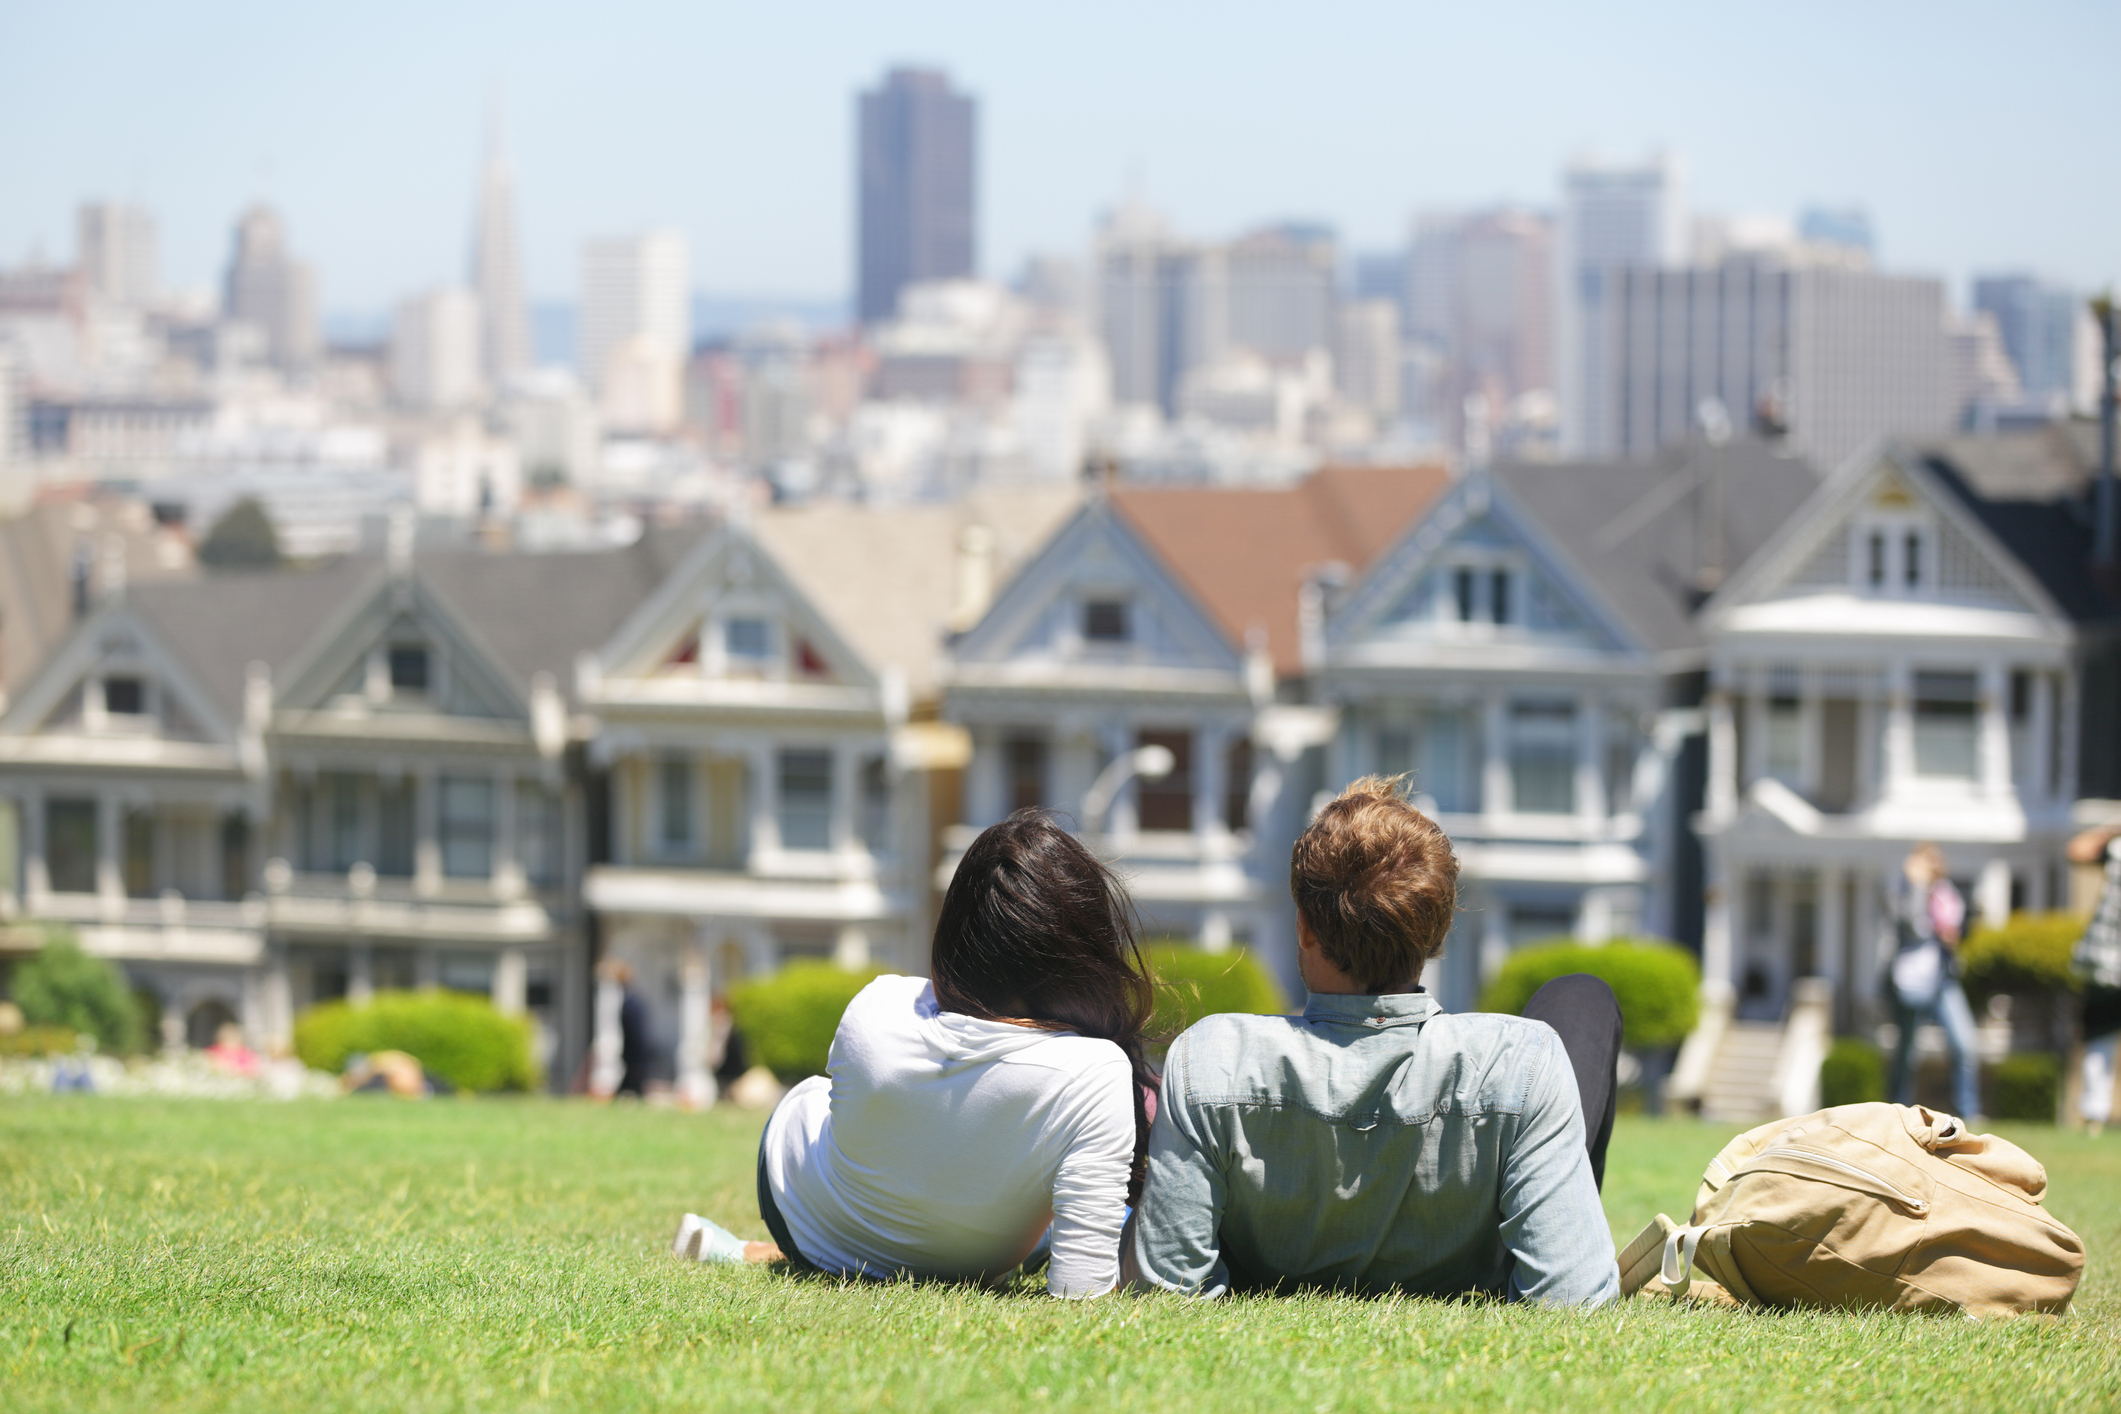 San Francisco's Leading Couples Counseling & Sex Therapy Center - In San Francisco's Attachment-Based Couples & Sex Therapy Programs, we create a safe environment that encourages stepping into the flow of intimacy, love, secure attachment, communication and sexuality.